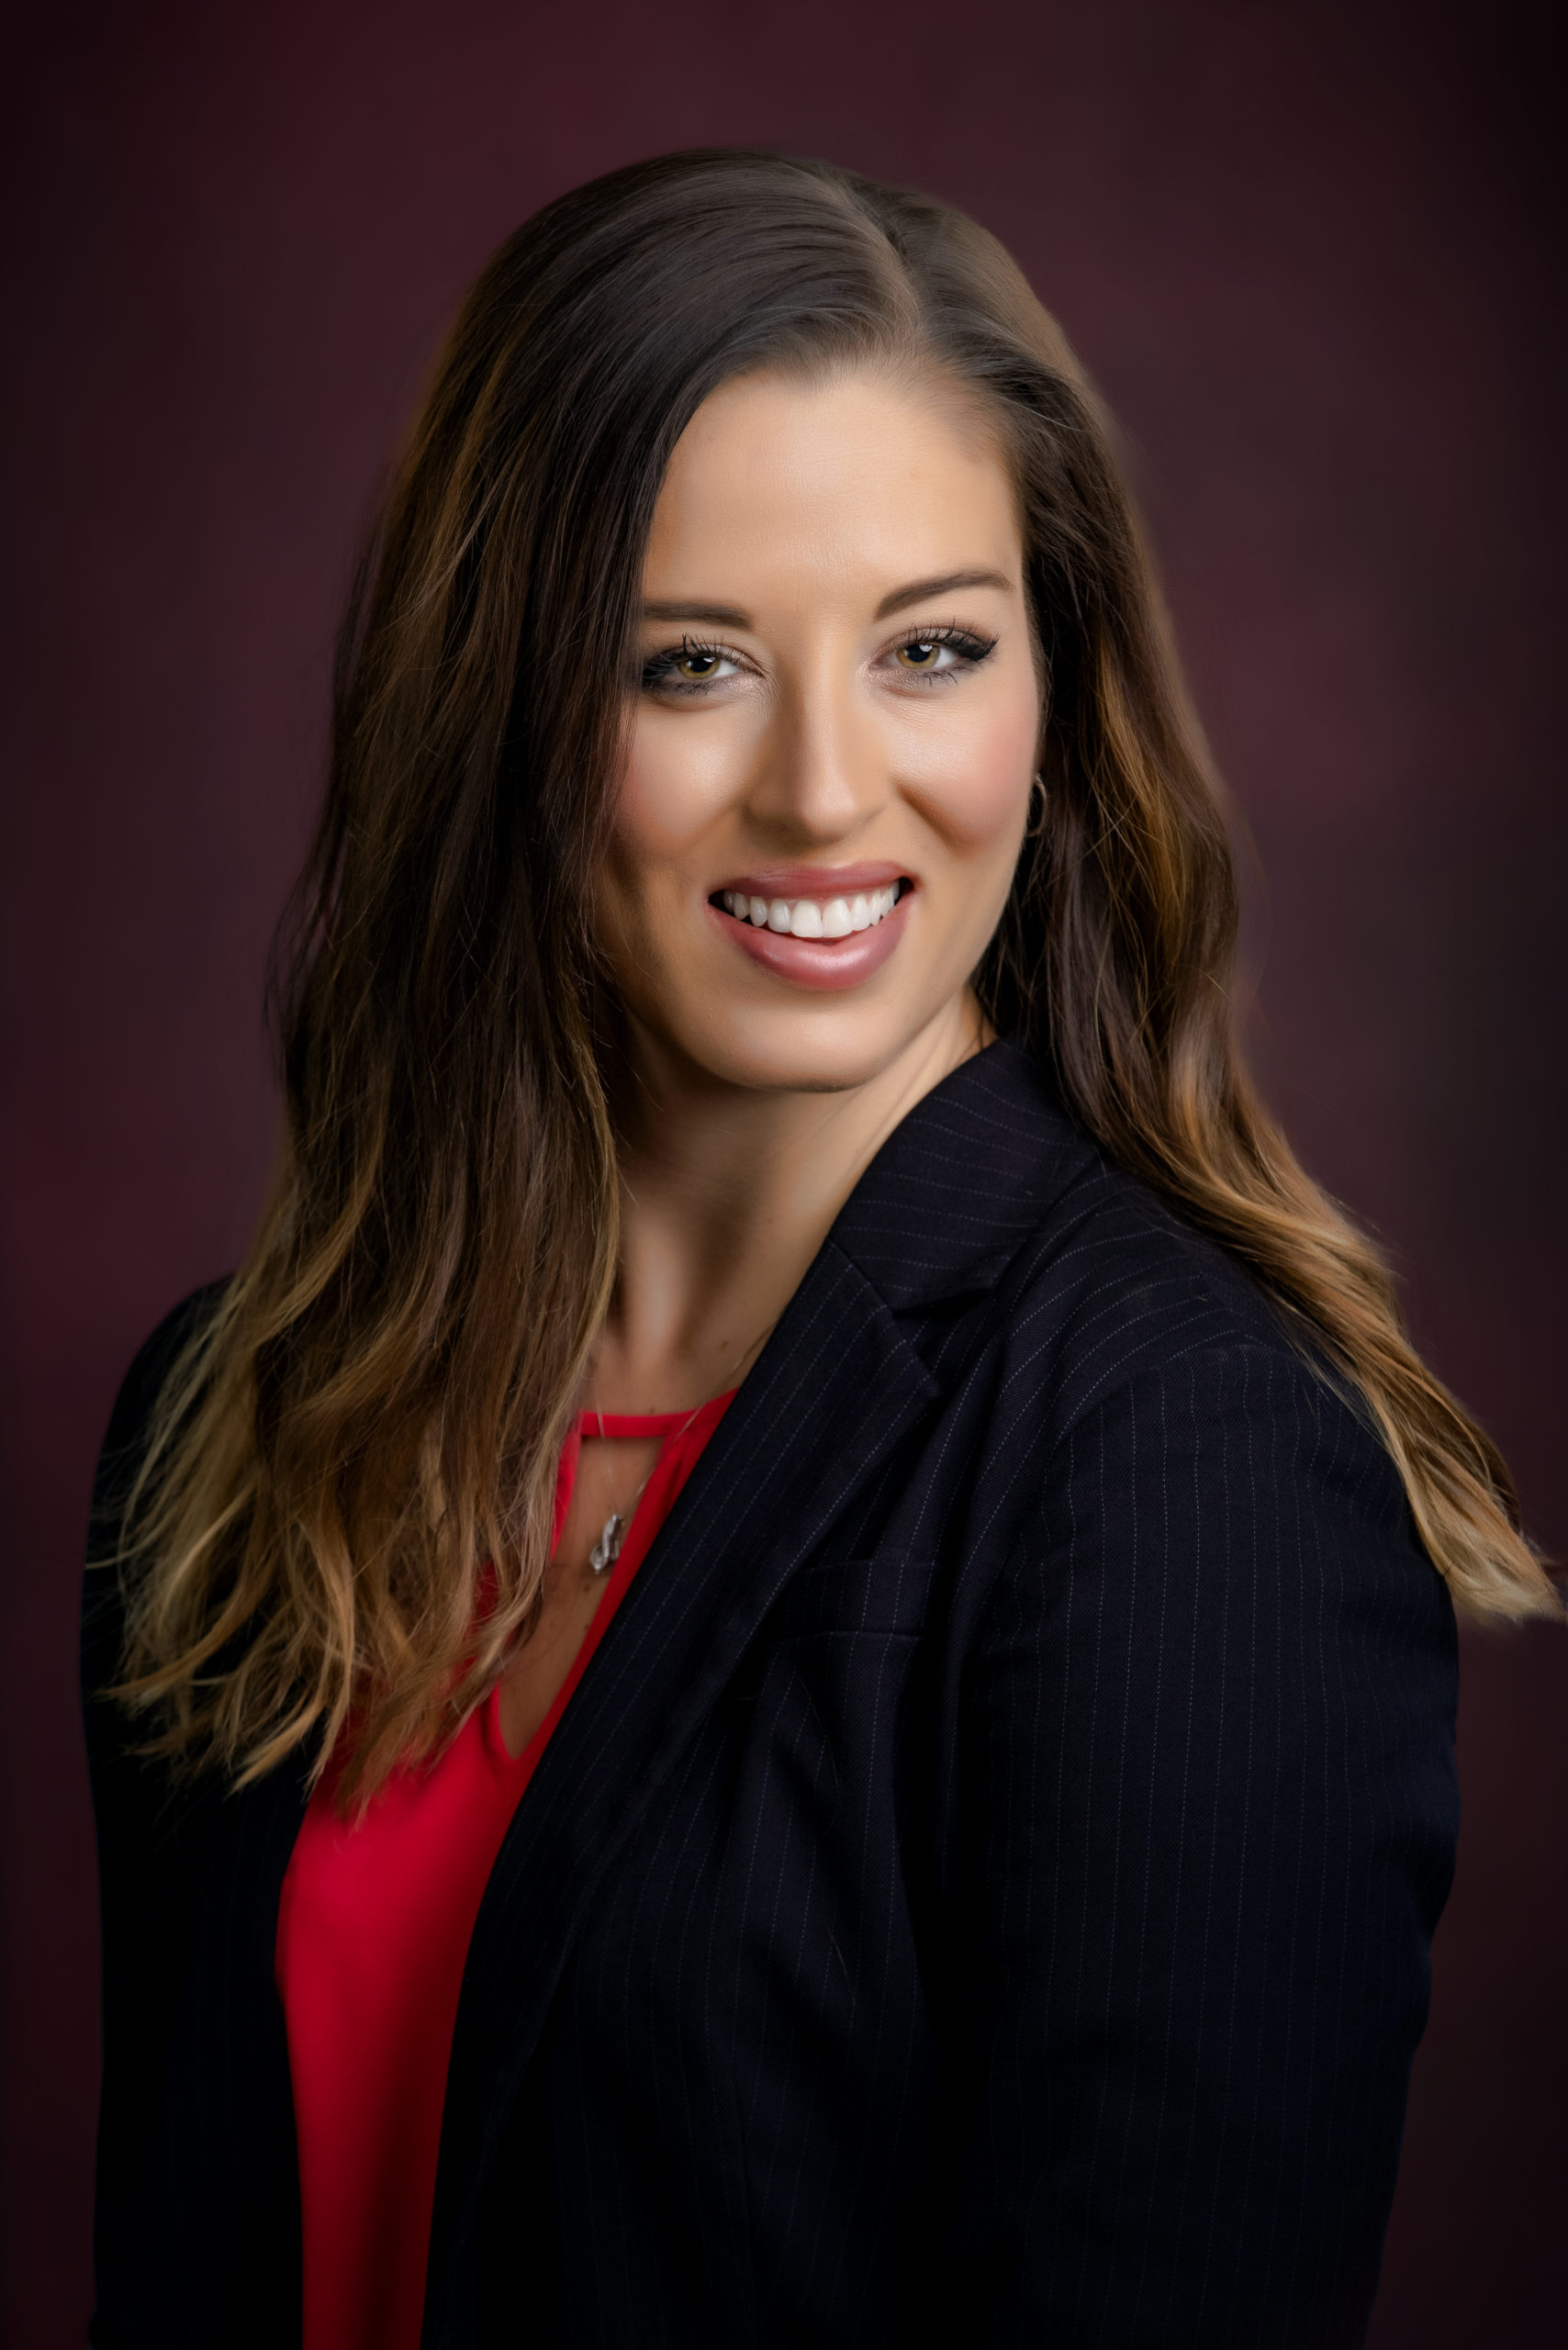 Headshot of Mallory Haas, PA-C at Family Medical Specialties in Holdrege NE